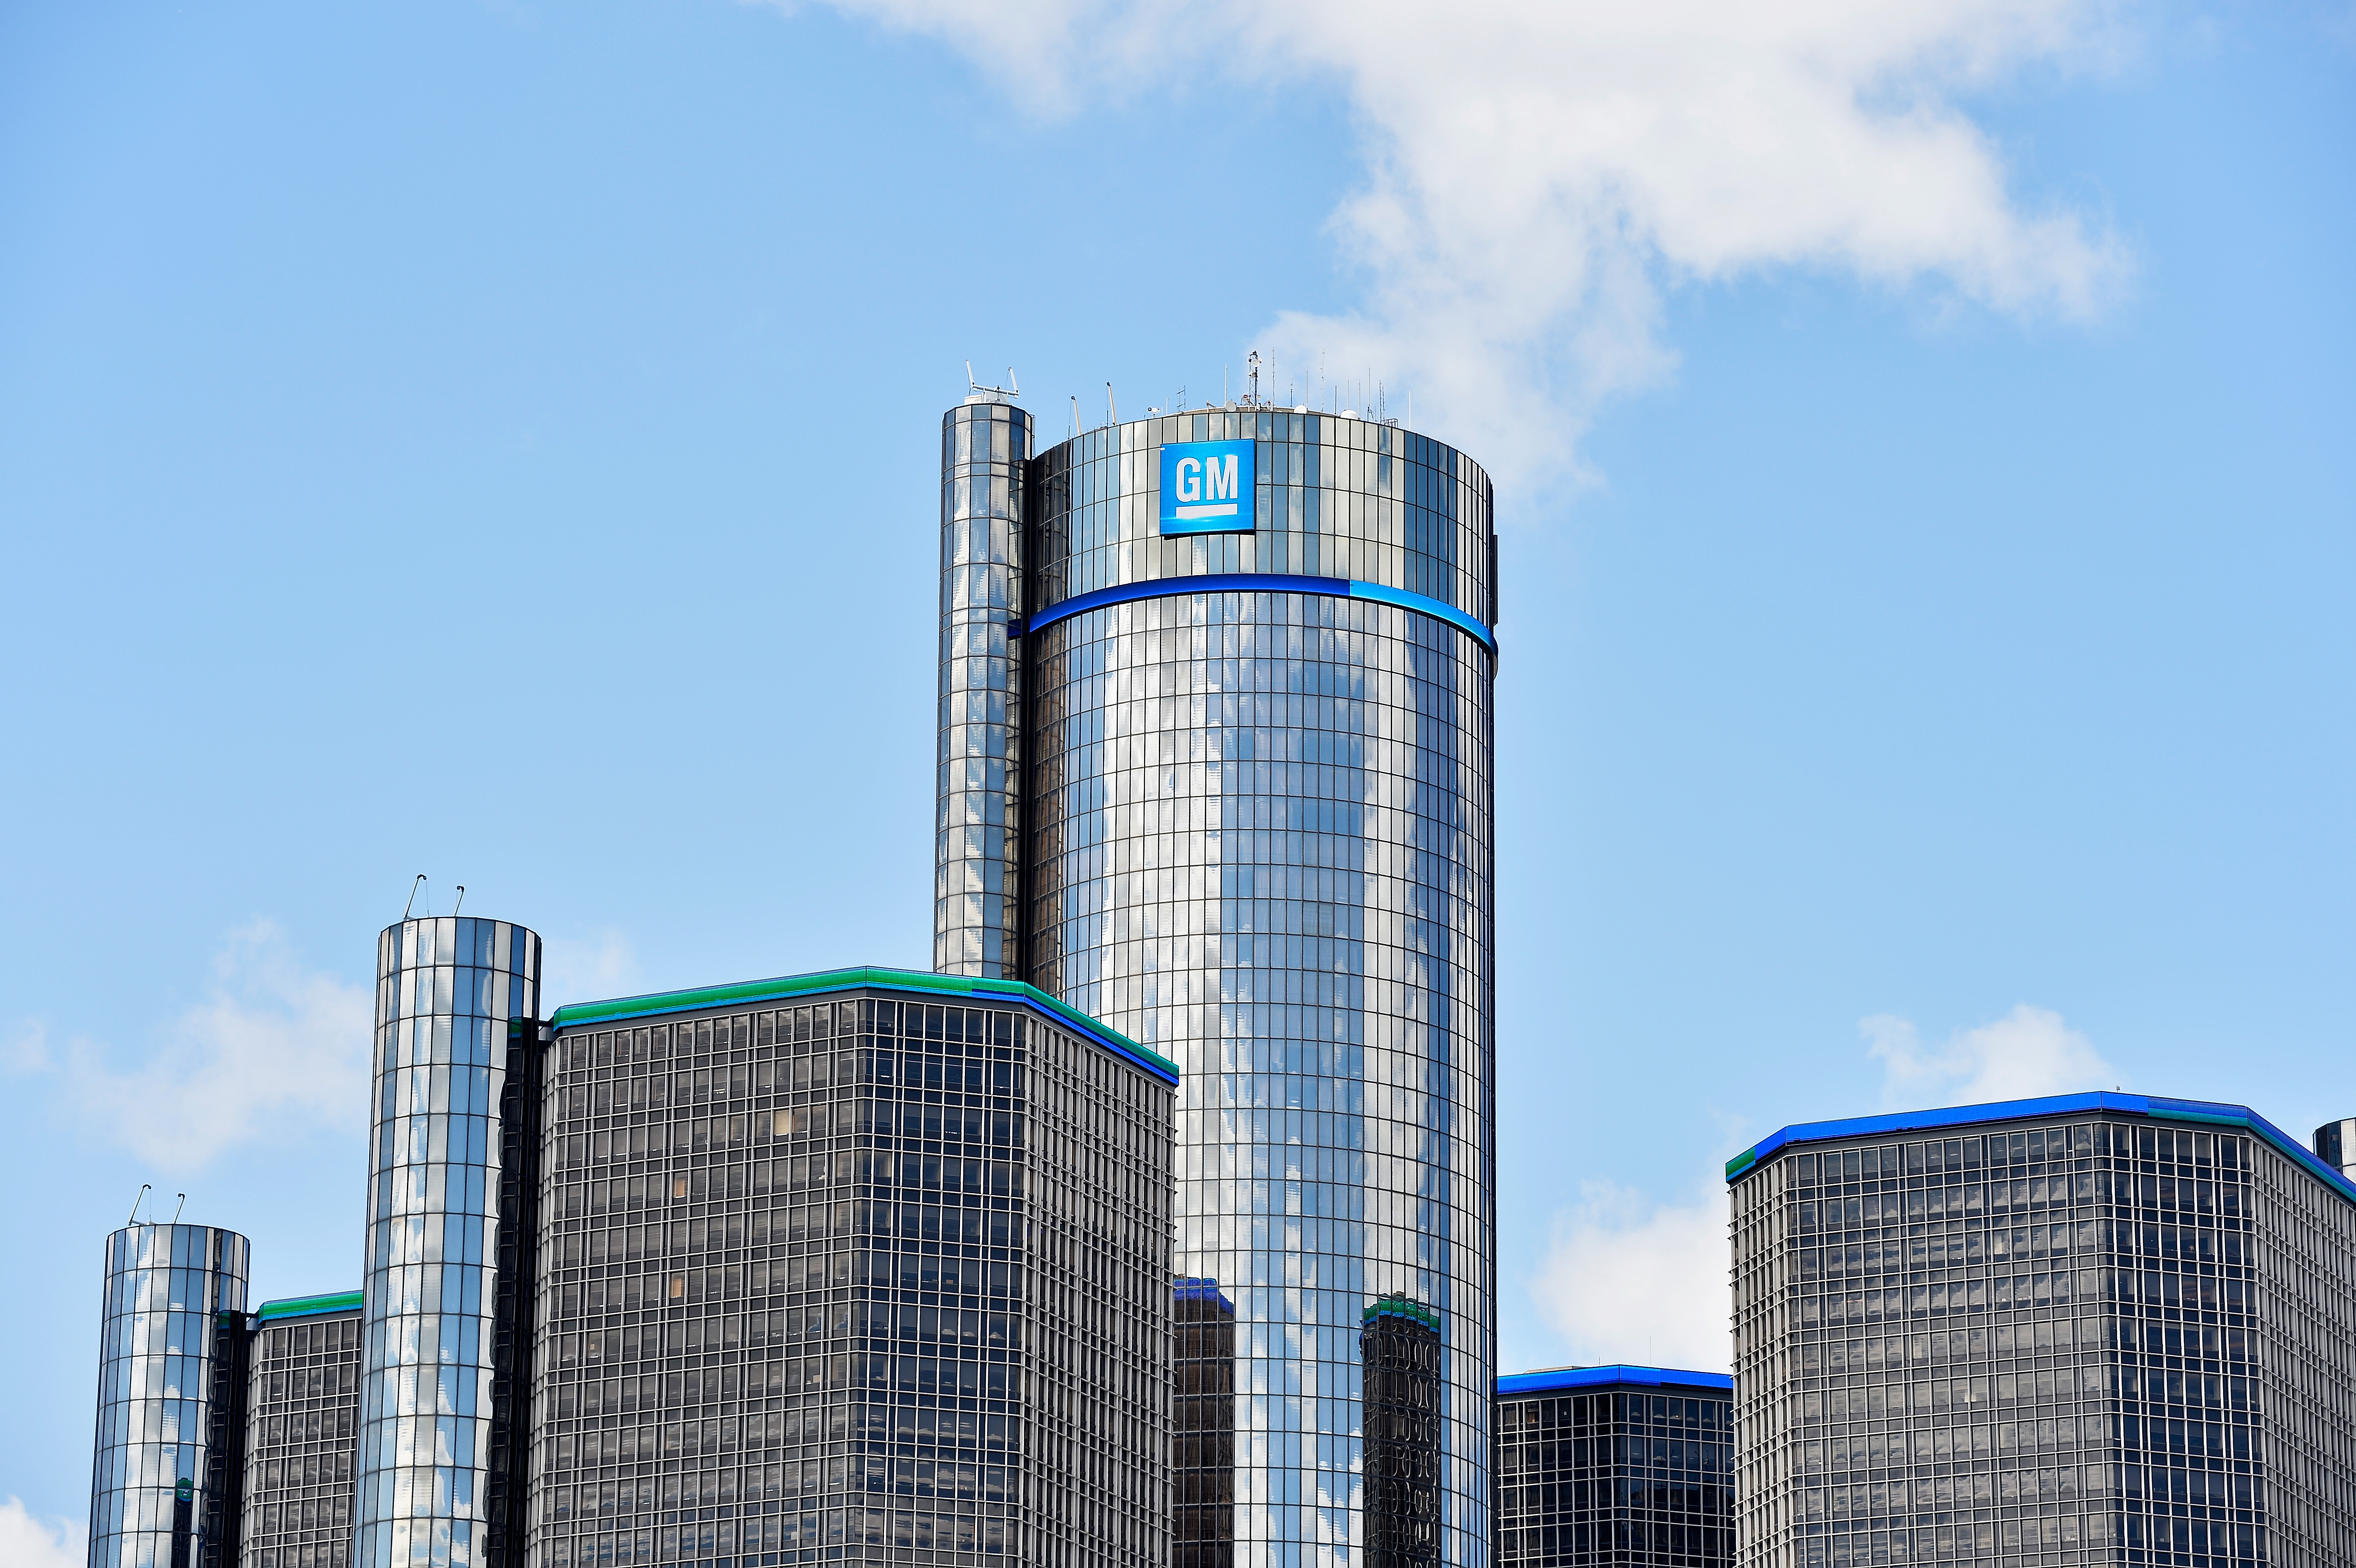 <strong>General Motors</strong> GM's troubles with its dangerously defective vehicles don't appear to have hurt sales — at least not yet. In April, the automaker's U.S. sales rose 7% from a year ago as CEO Mary Barra explained to Congress how GM would handle recalls of millions of its vehicles. This follows higher vehicle sales in 2013 across many key markets, including the U.S., South America and the Asia/Pacific. The company expects to spend $1.7 billion to cover the cost of its record-setting number of recalls so far in 2014.